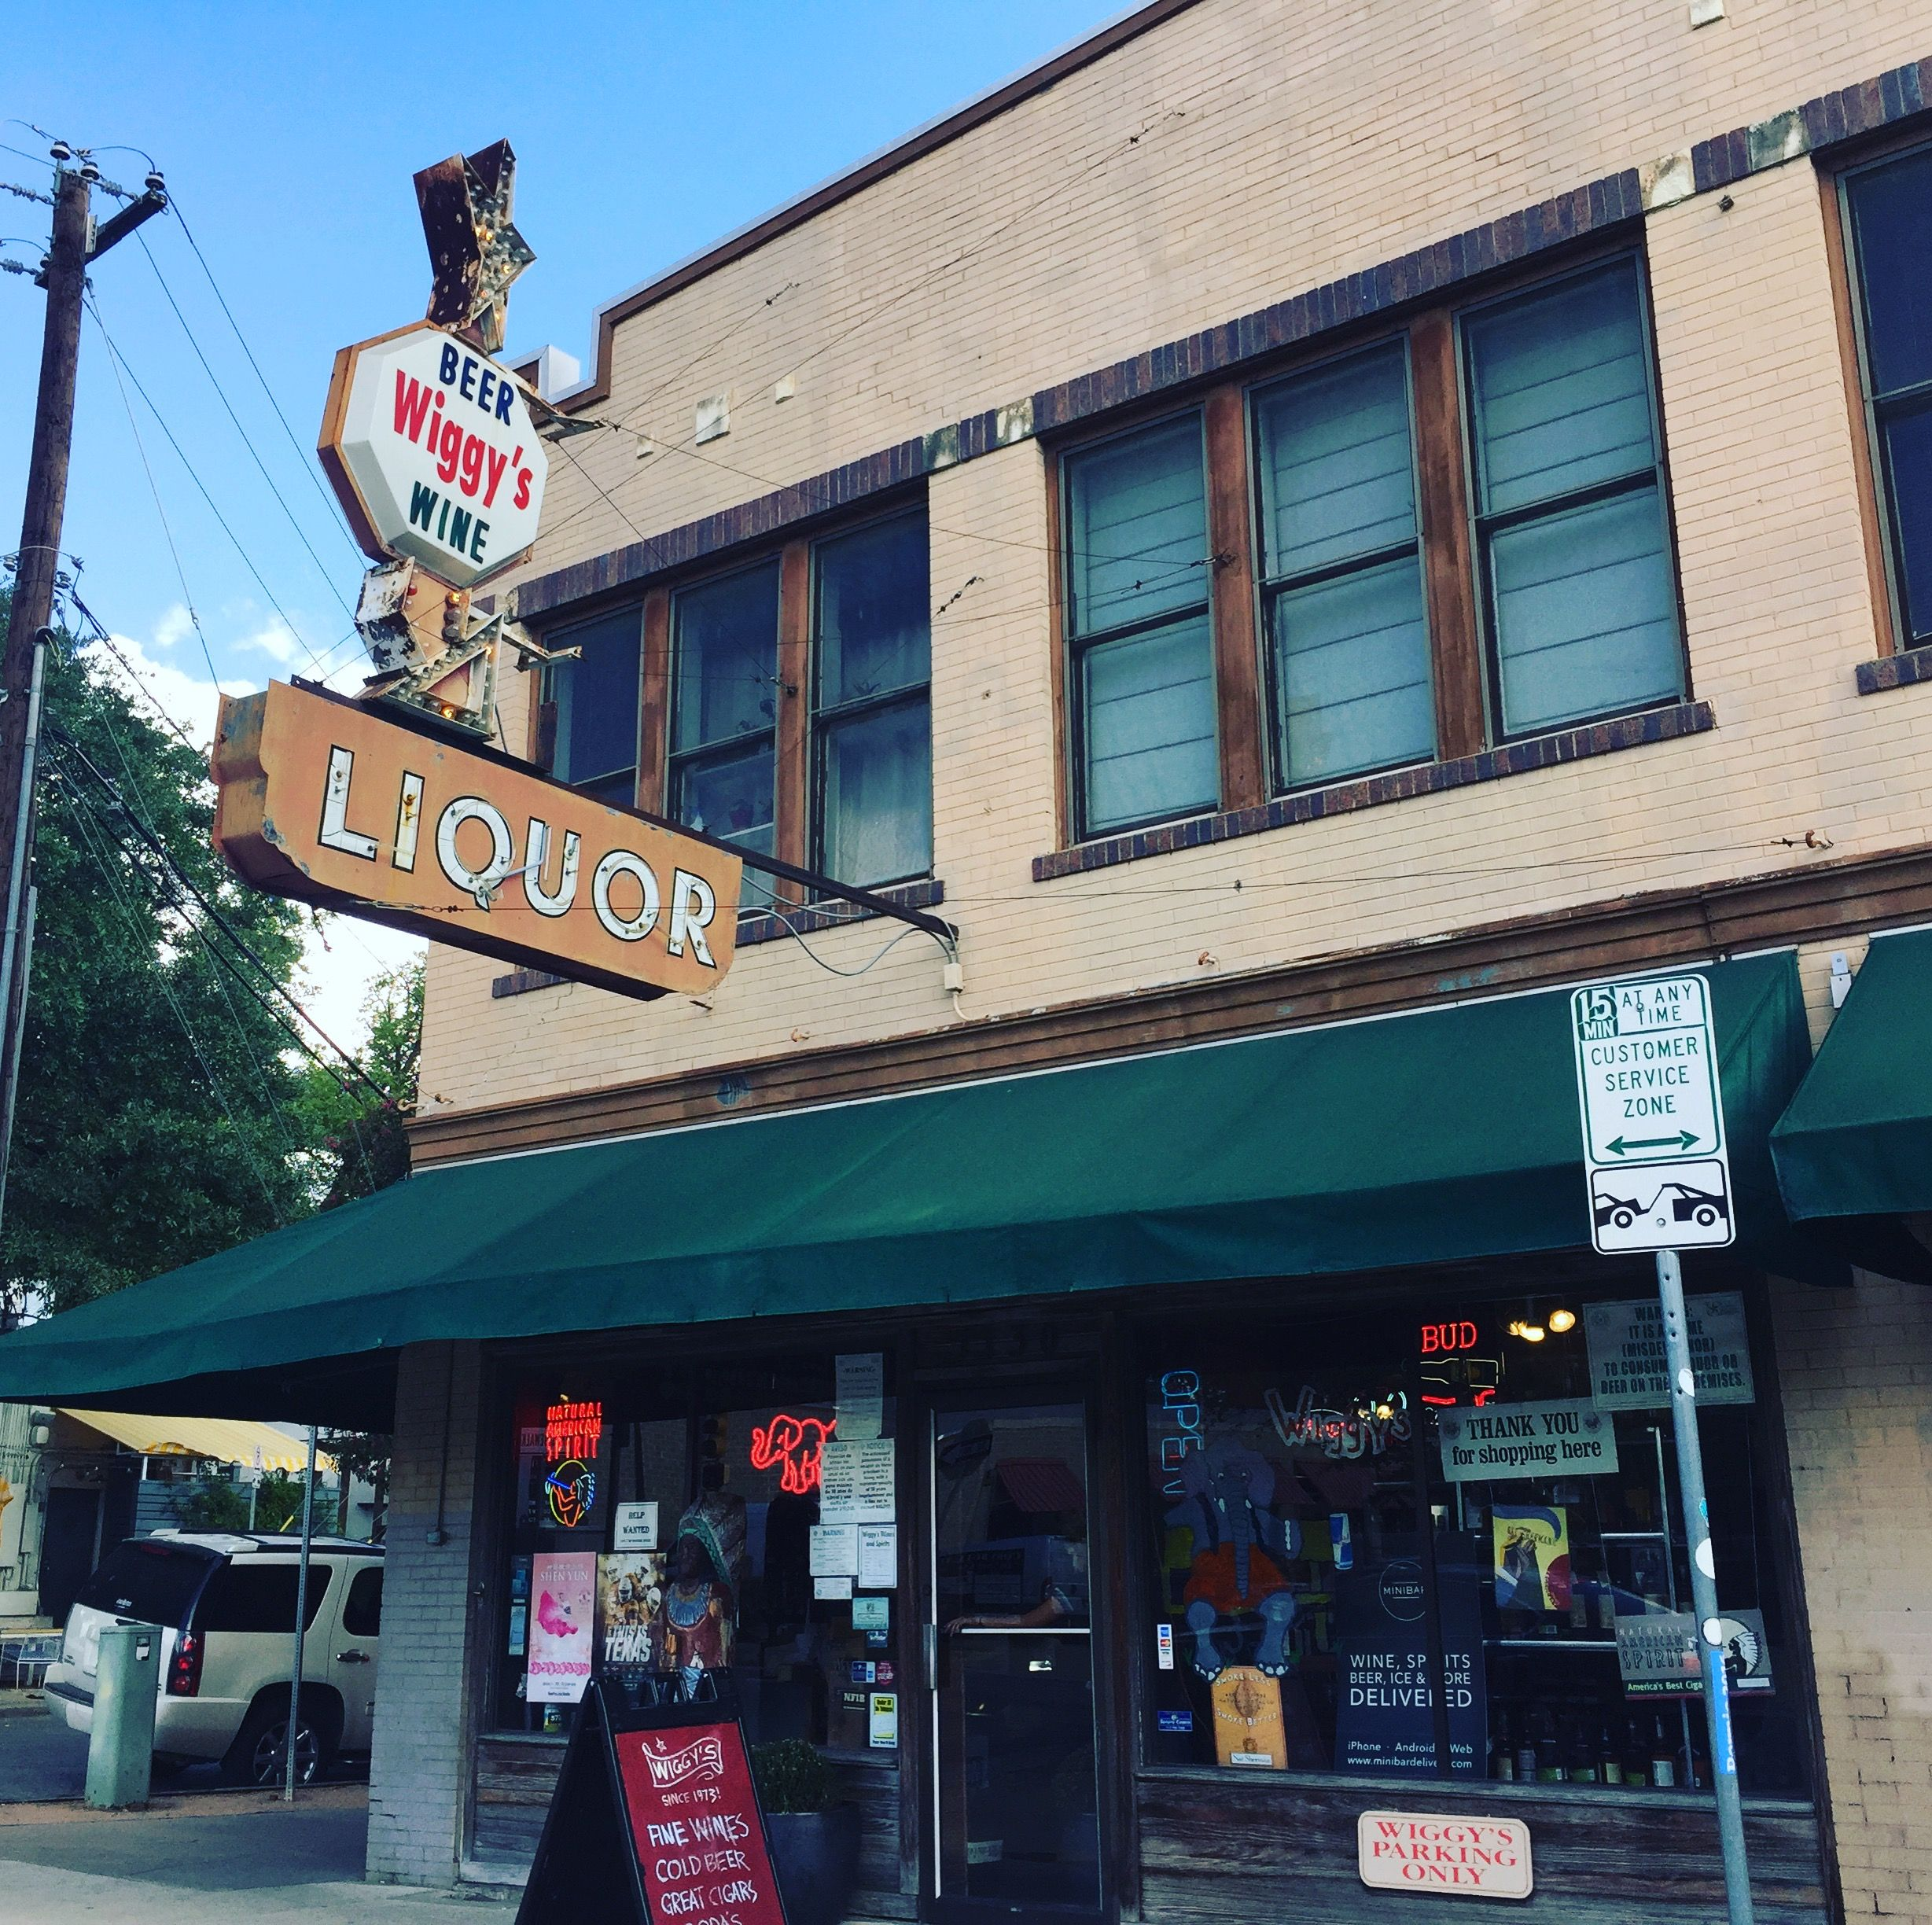 Apartments For Lease Downtown Los Angeles: Downtown Austin Apartment For Lease Above Liquor Store